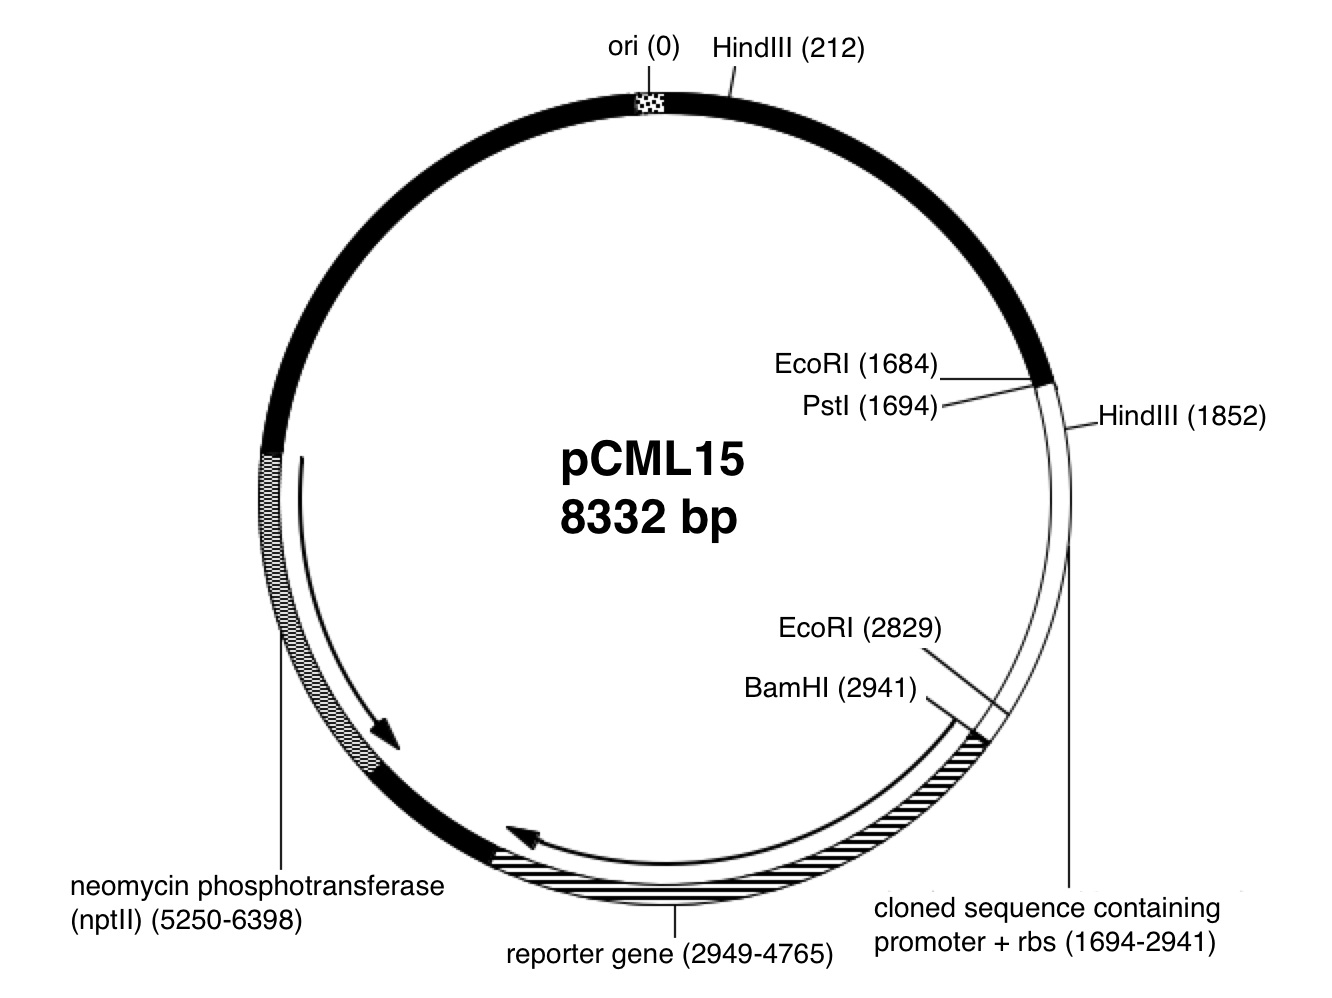 Plasmid Dna Isolation And Restriction Enzyme Digests